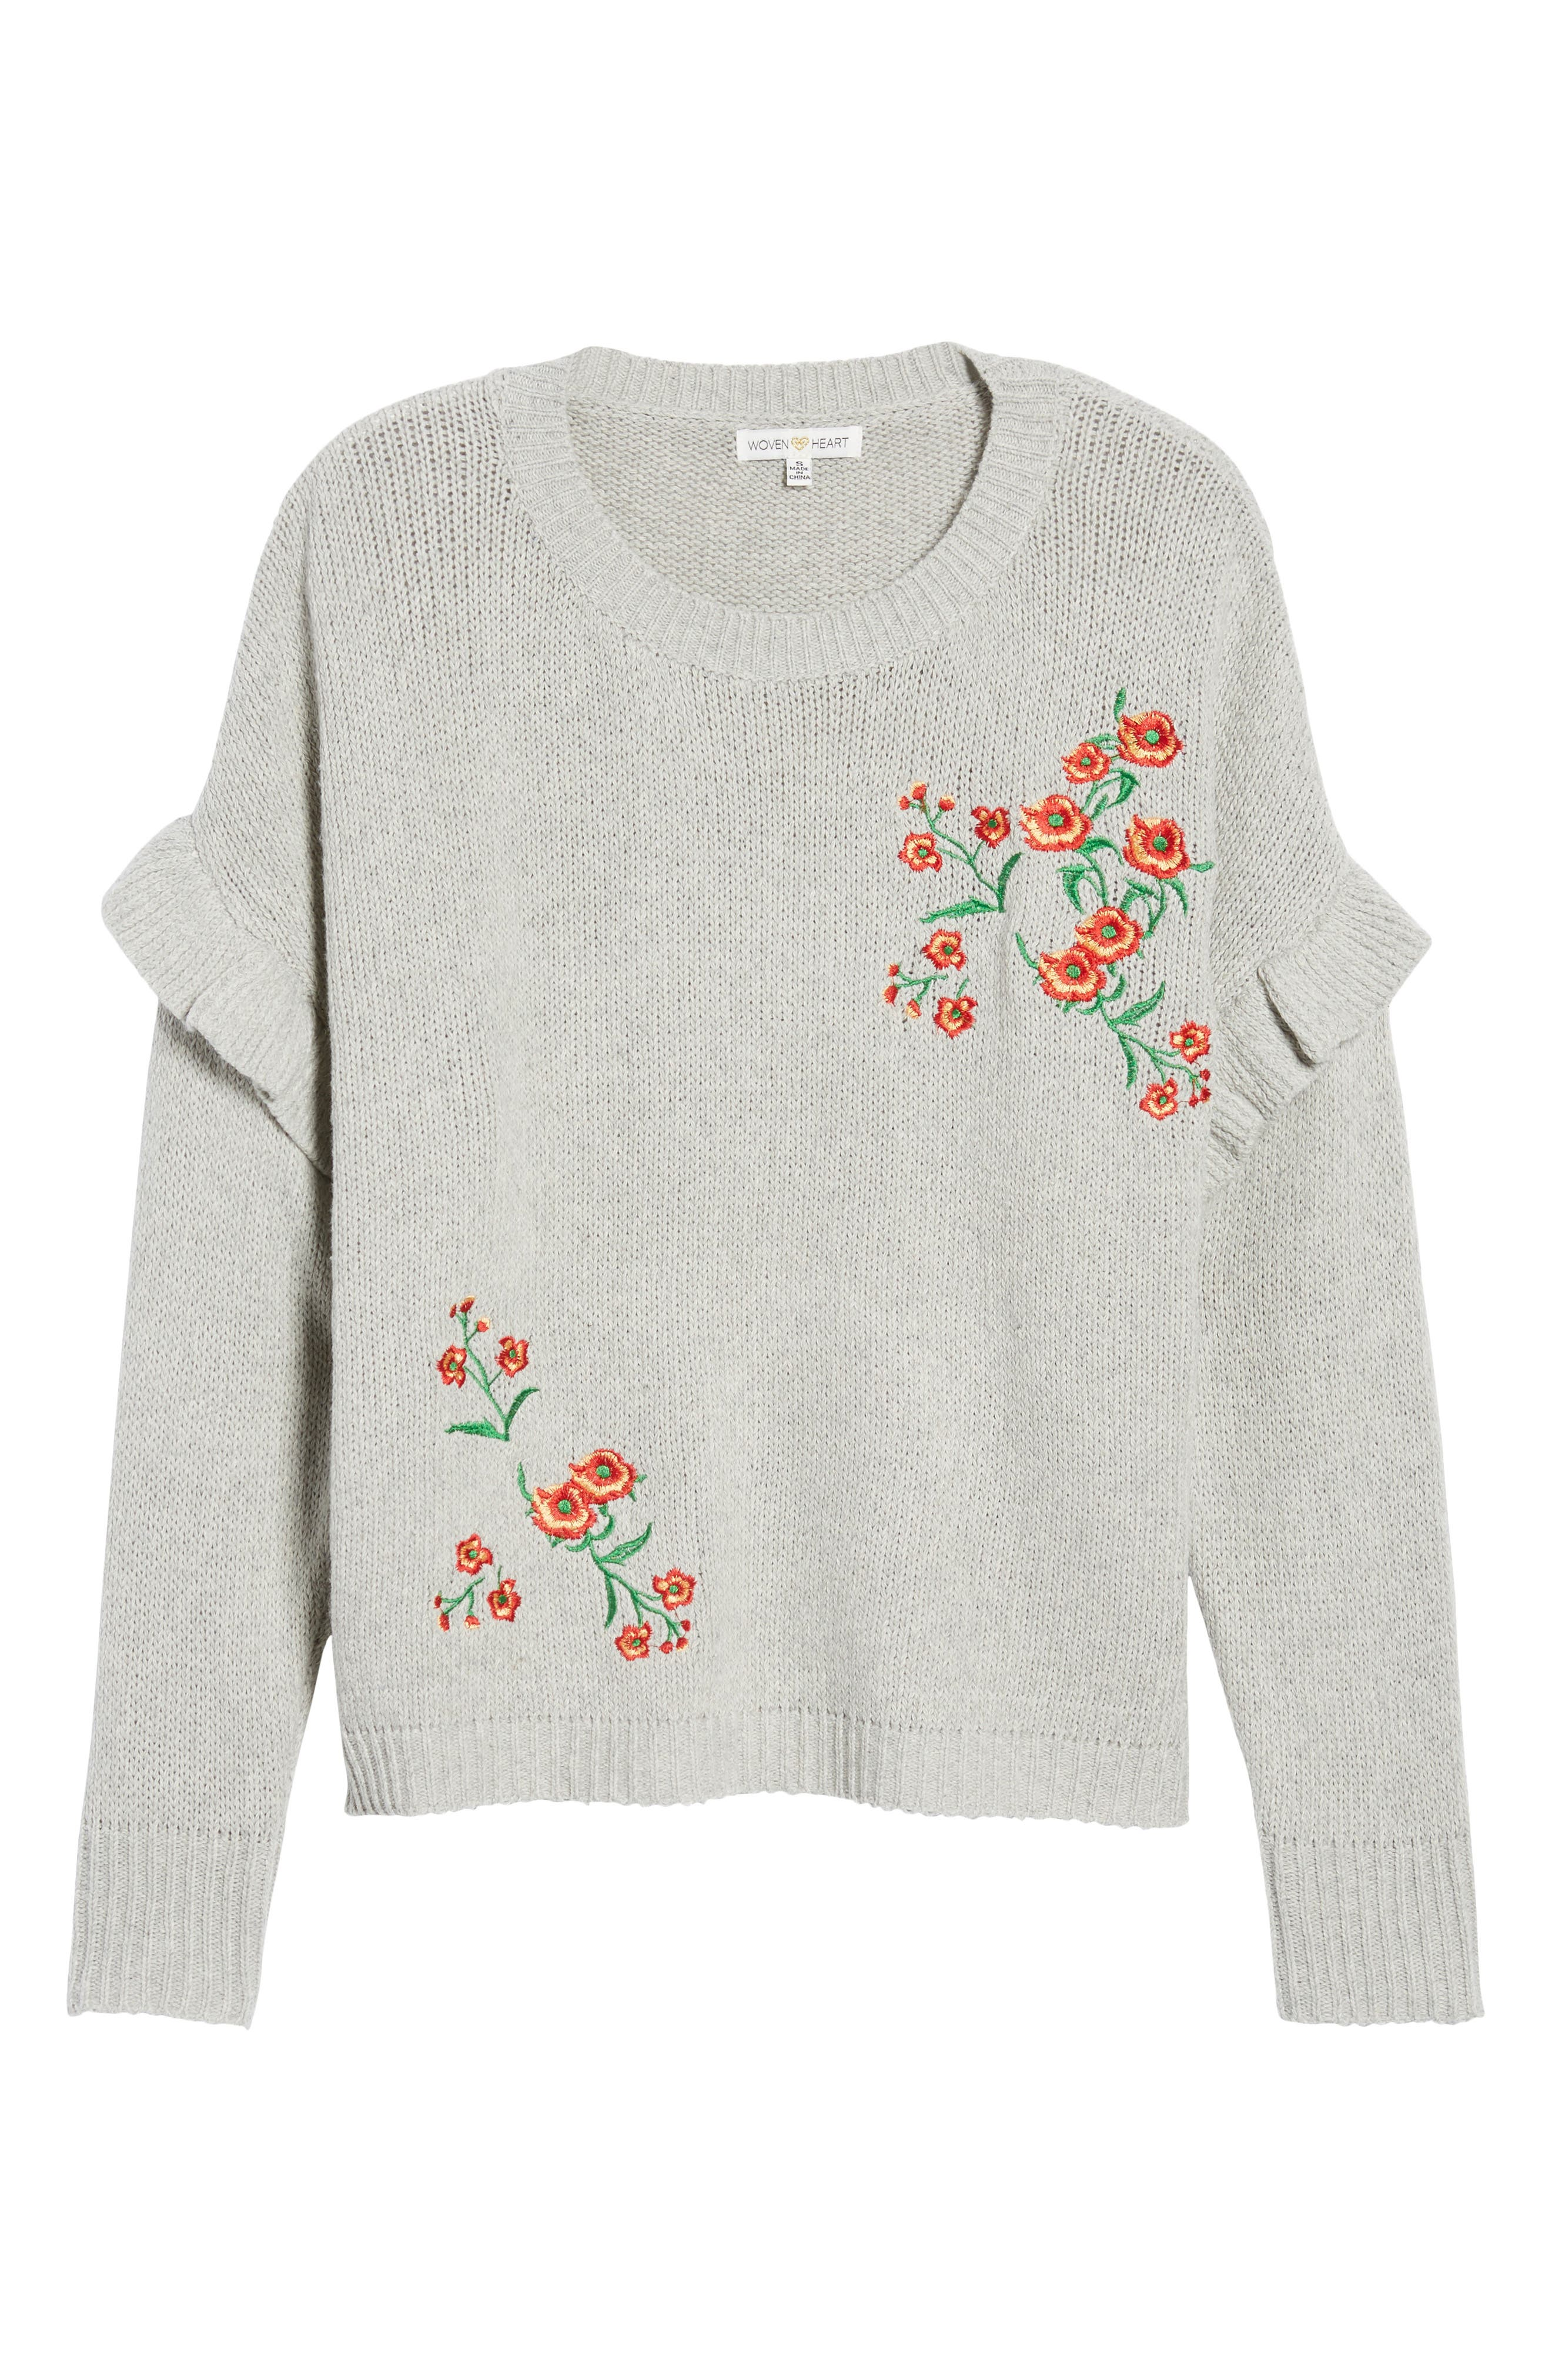 Ruffle Sleeve Embroidered Sweater,                             Alternate thumbnail 6, color,                             Grey